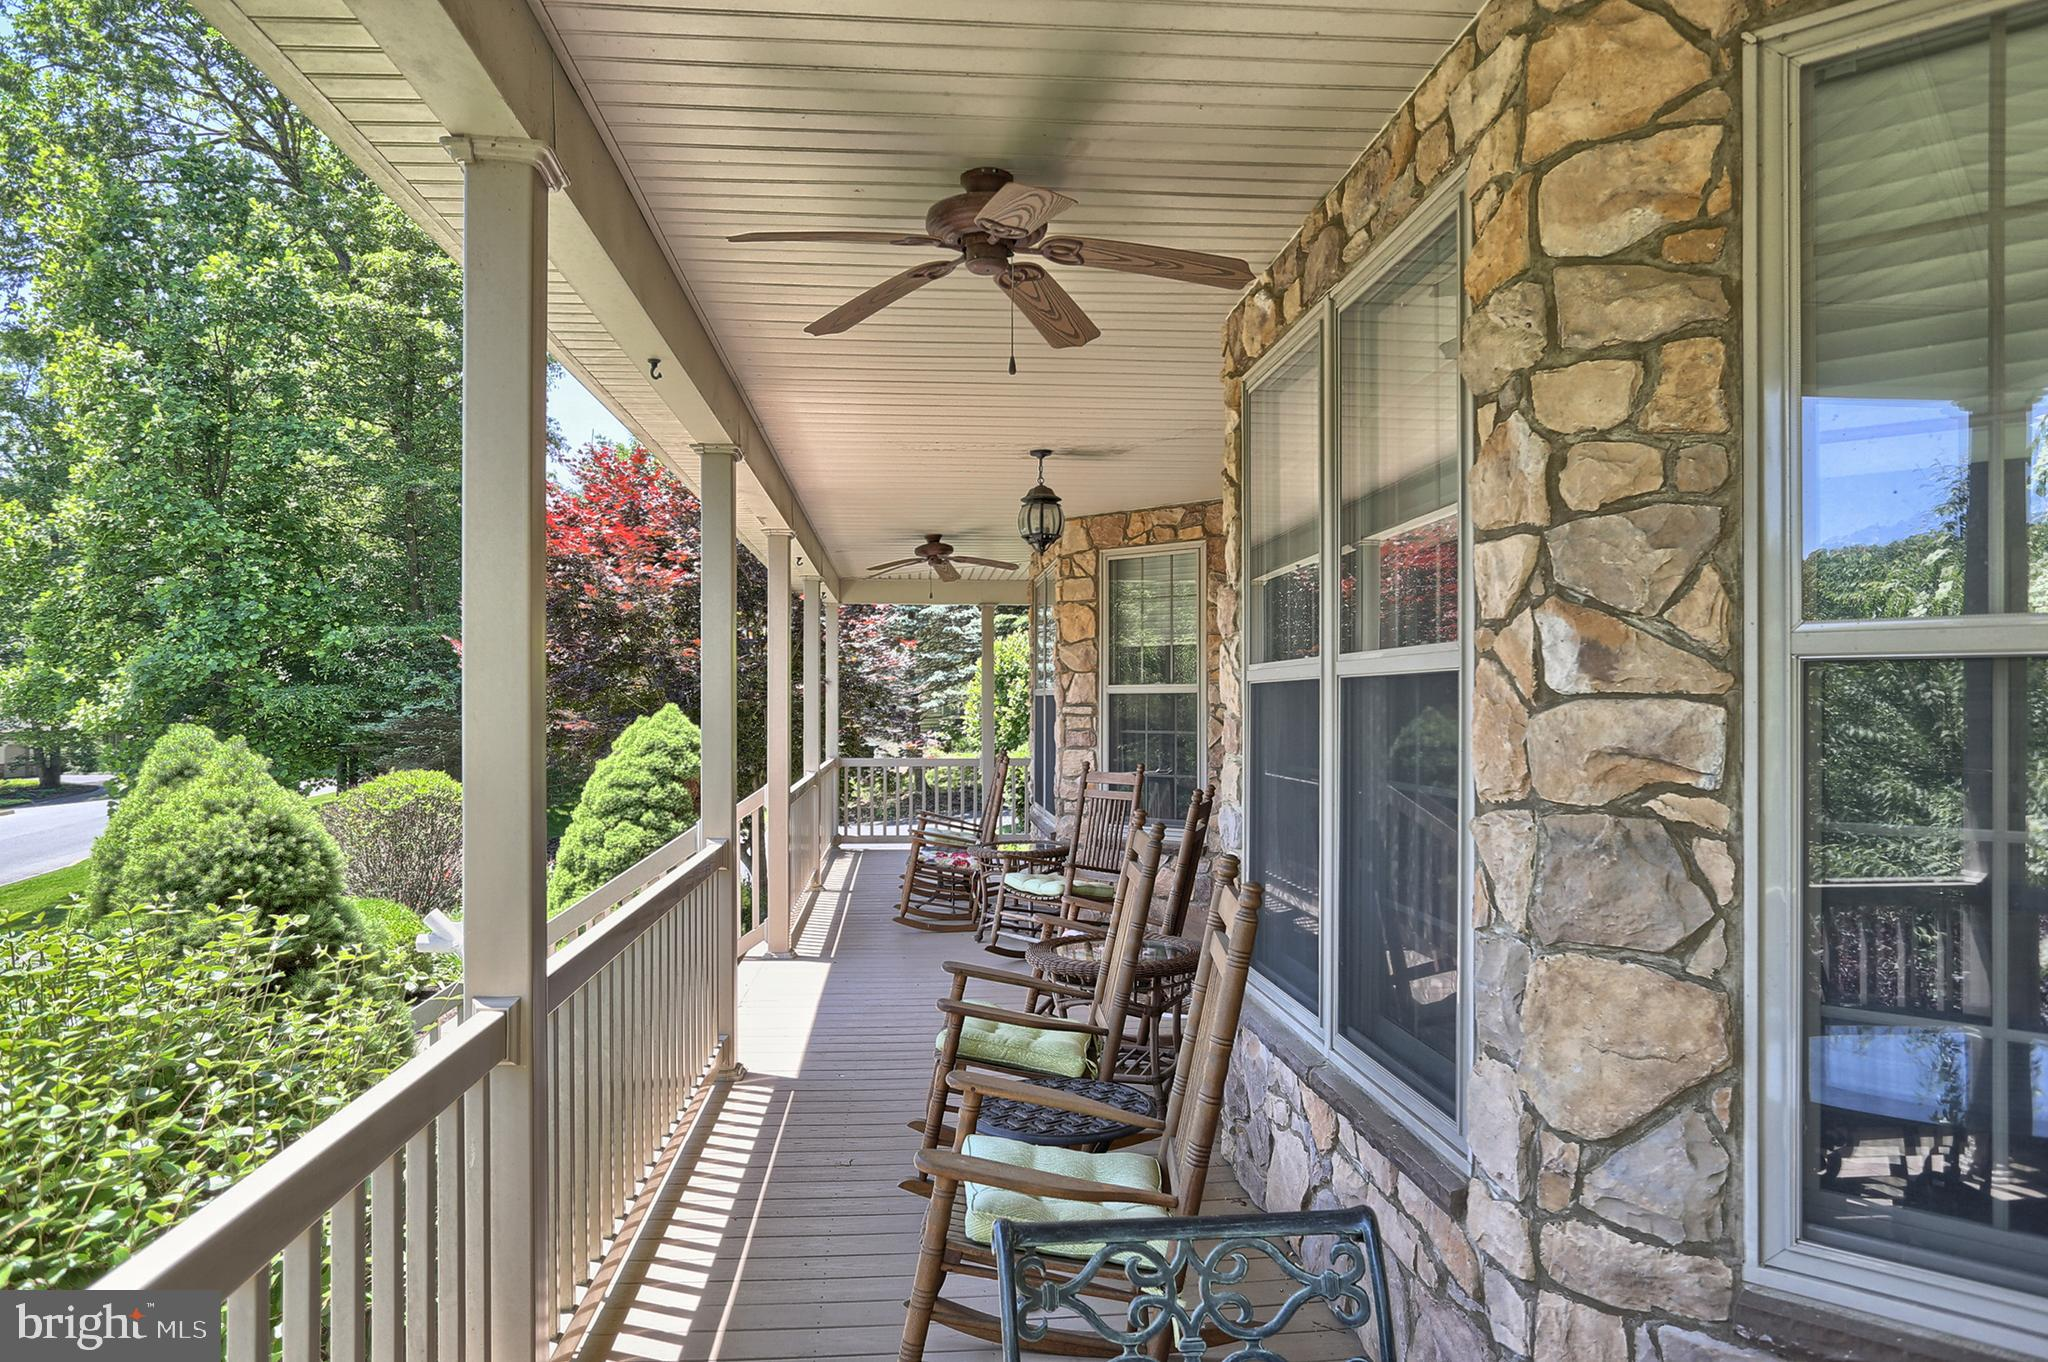 Front porch - Great place to relax or entertain